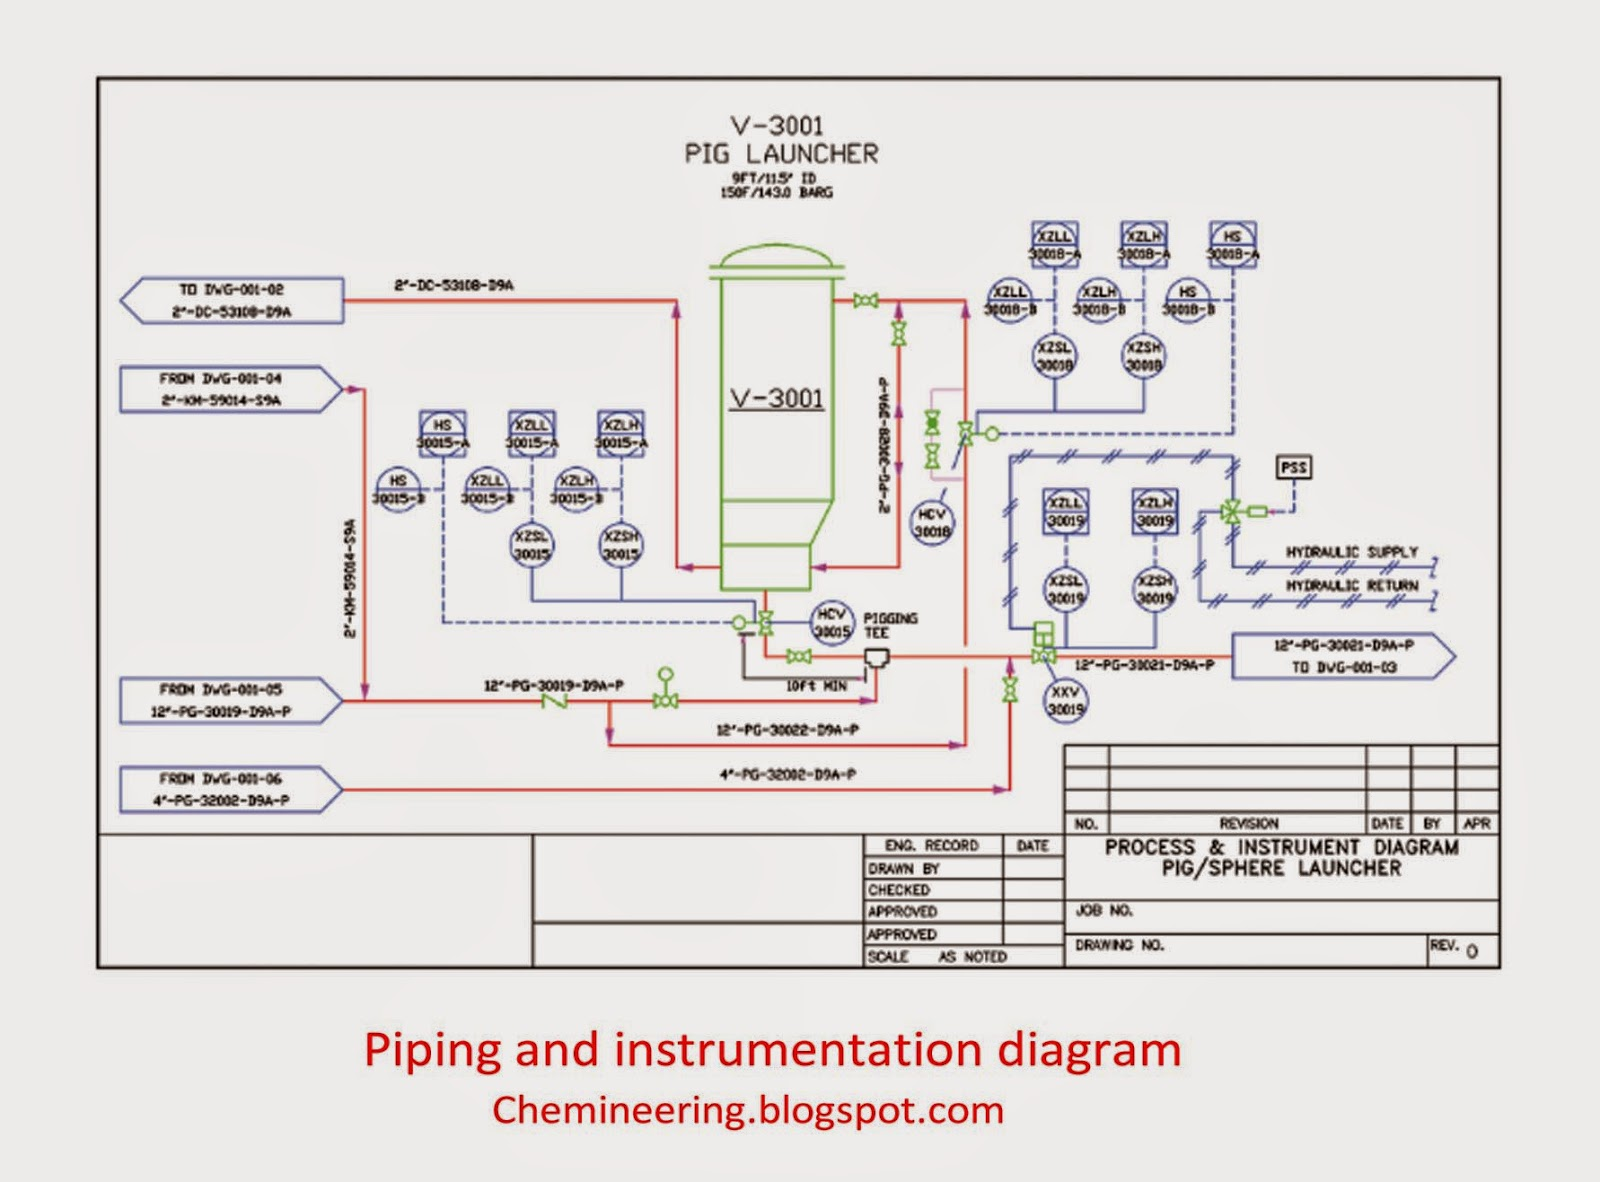 P&ID-Piping and Instrumentation Diagram